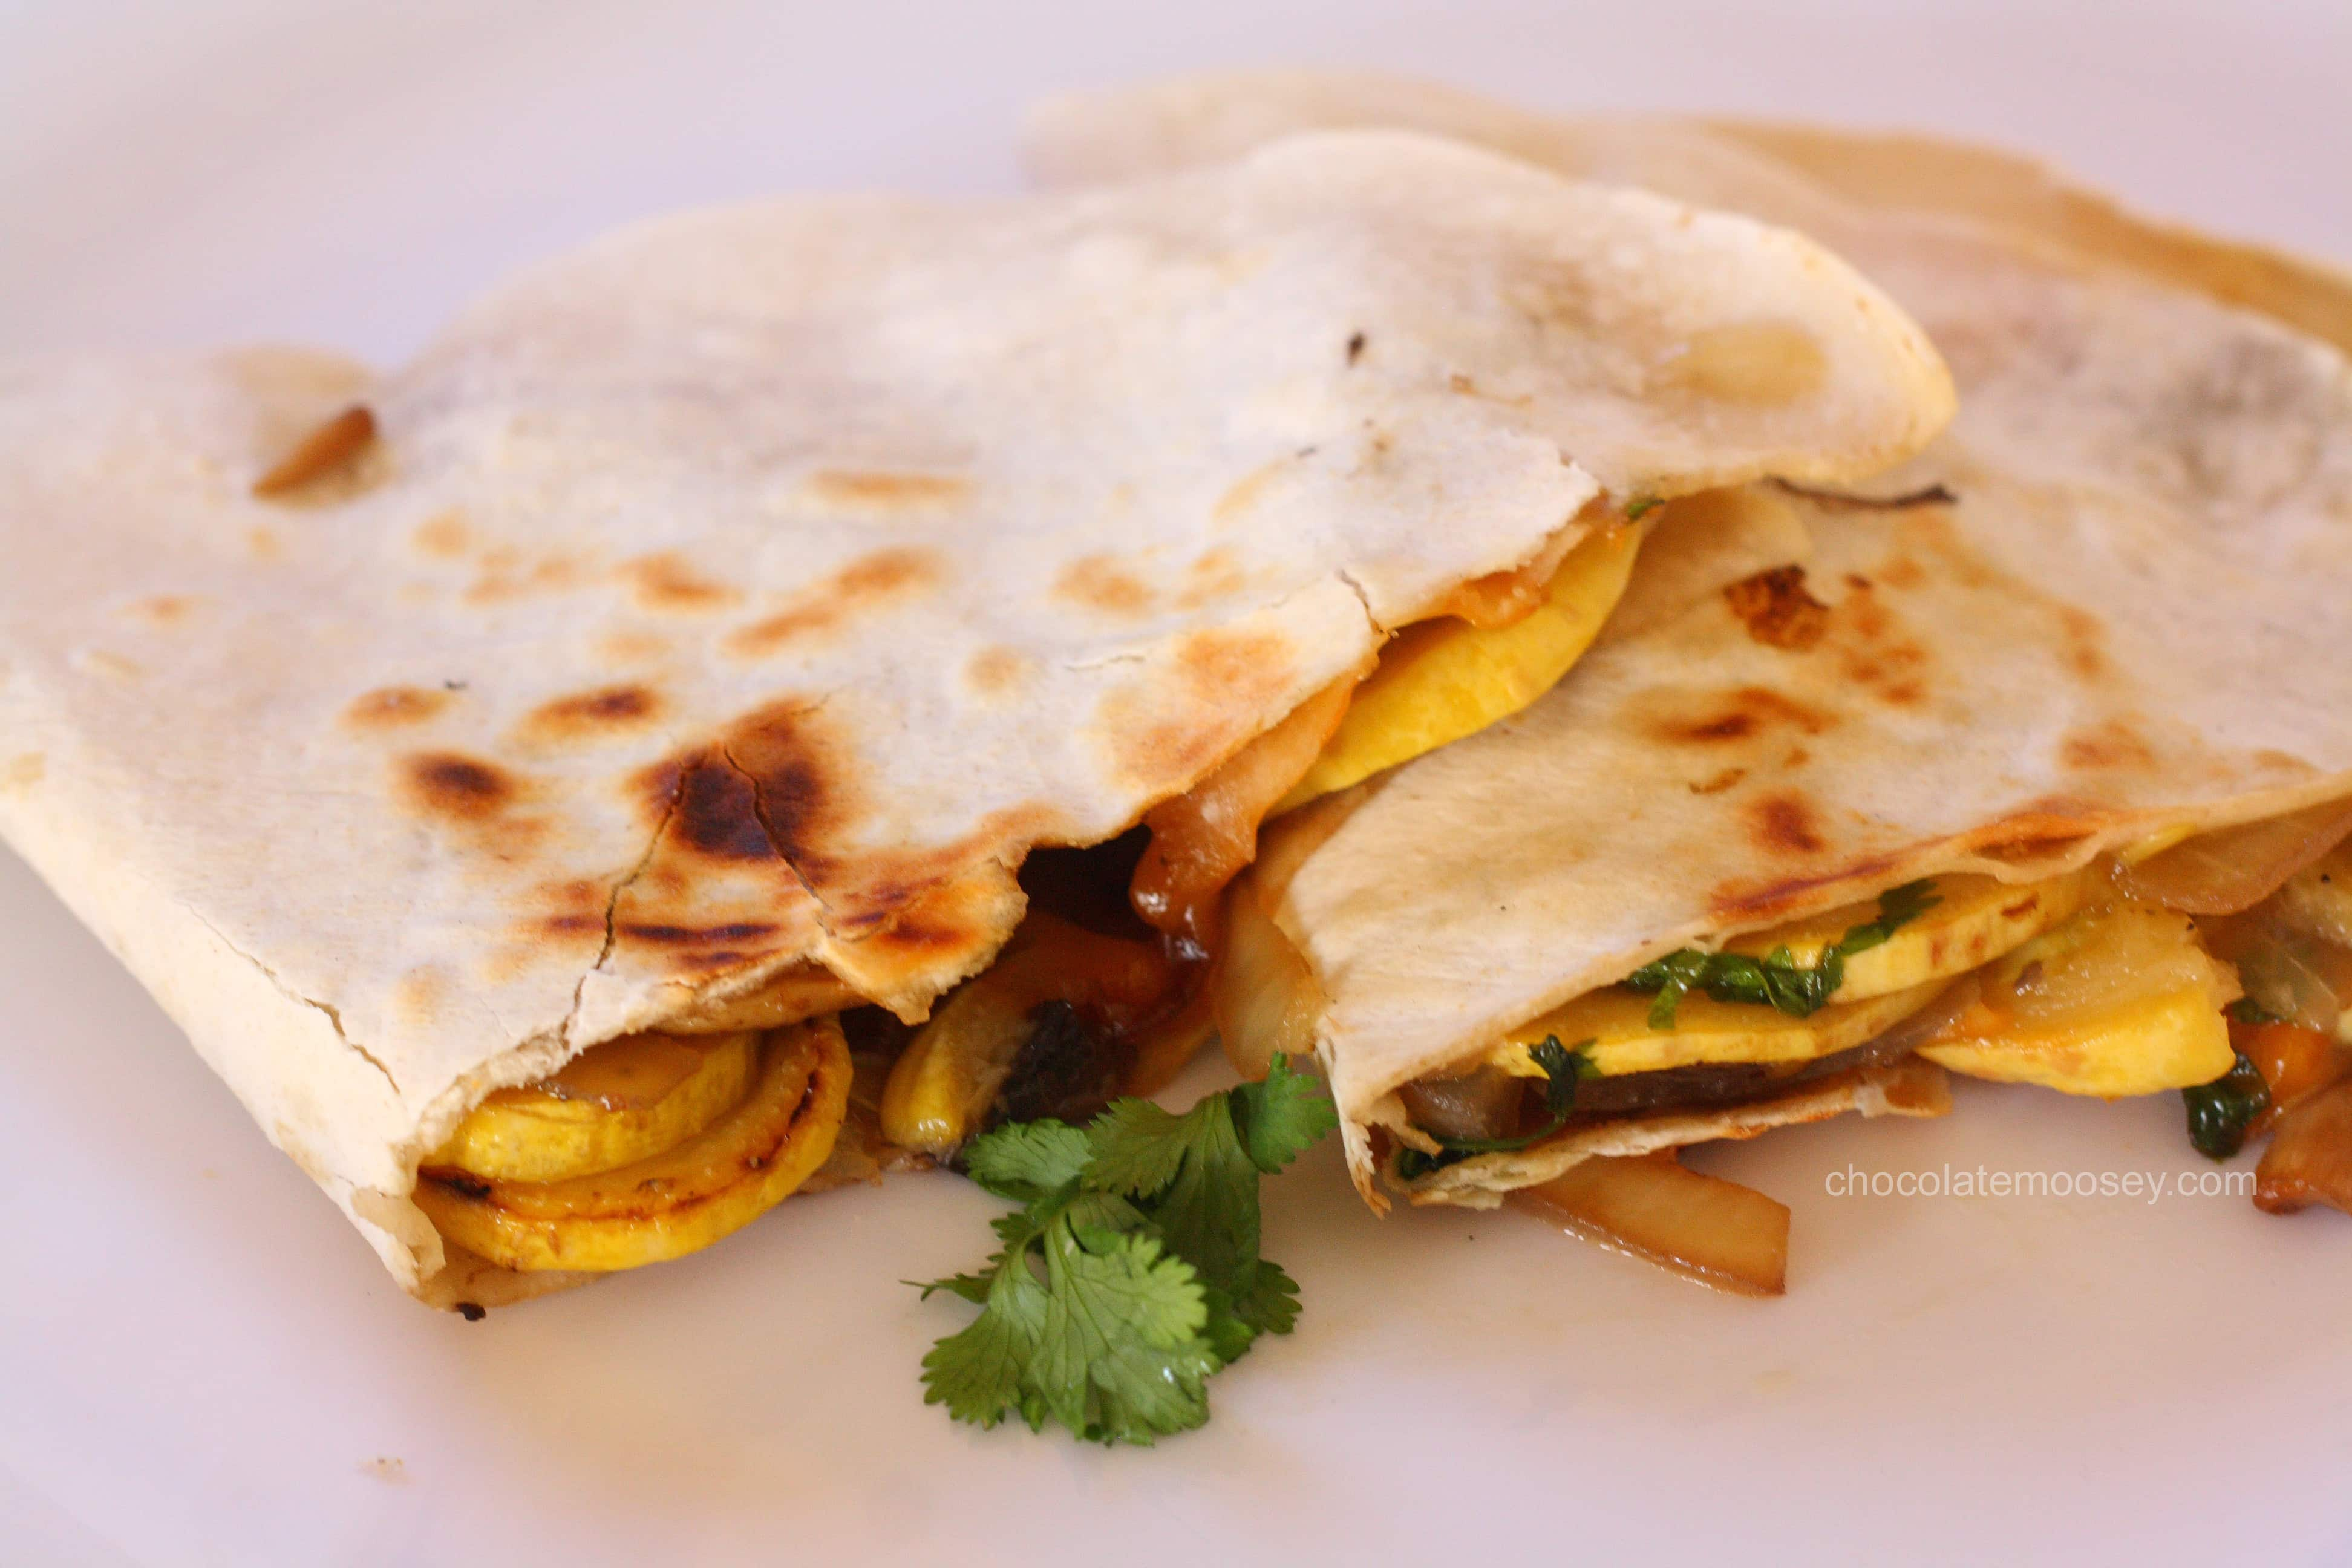 Summer Squash and Mushroom Quesadillas